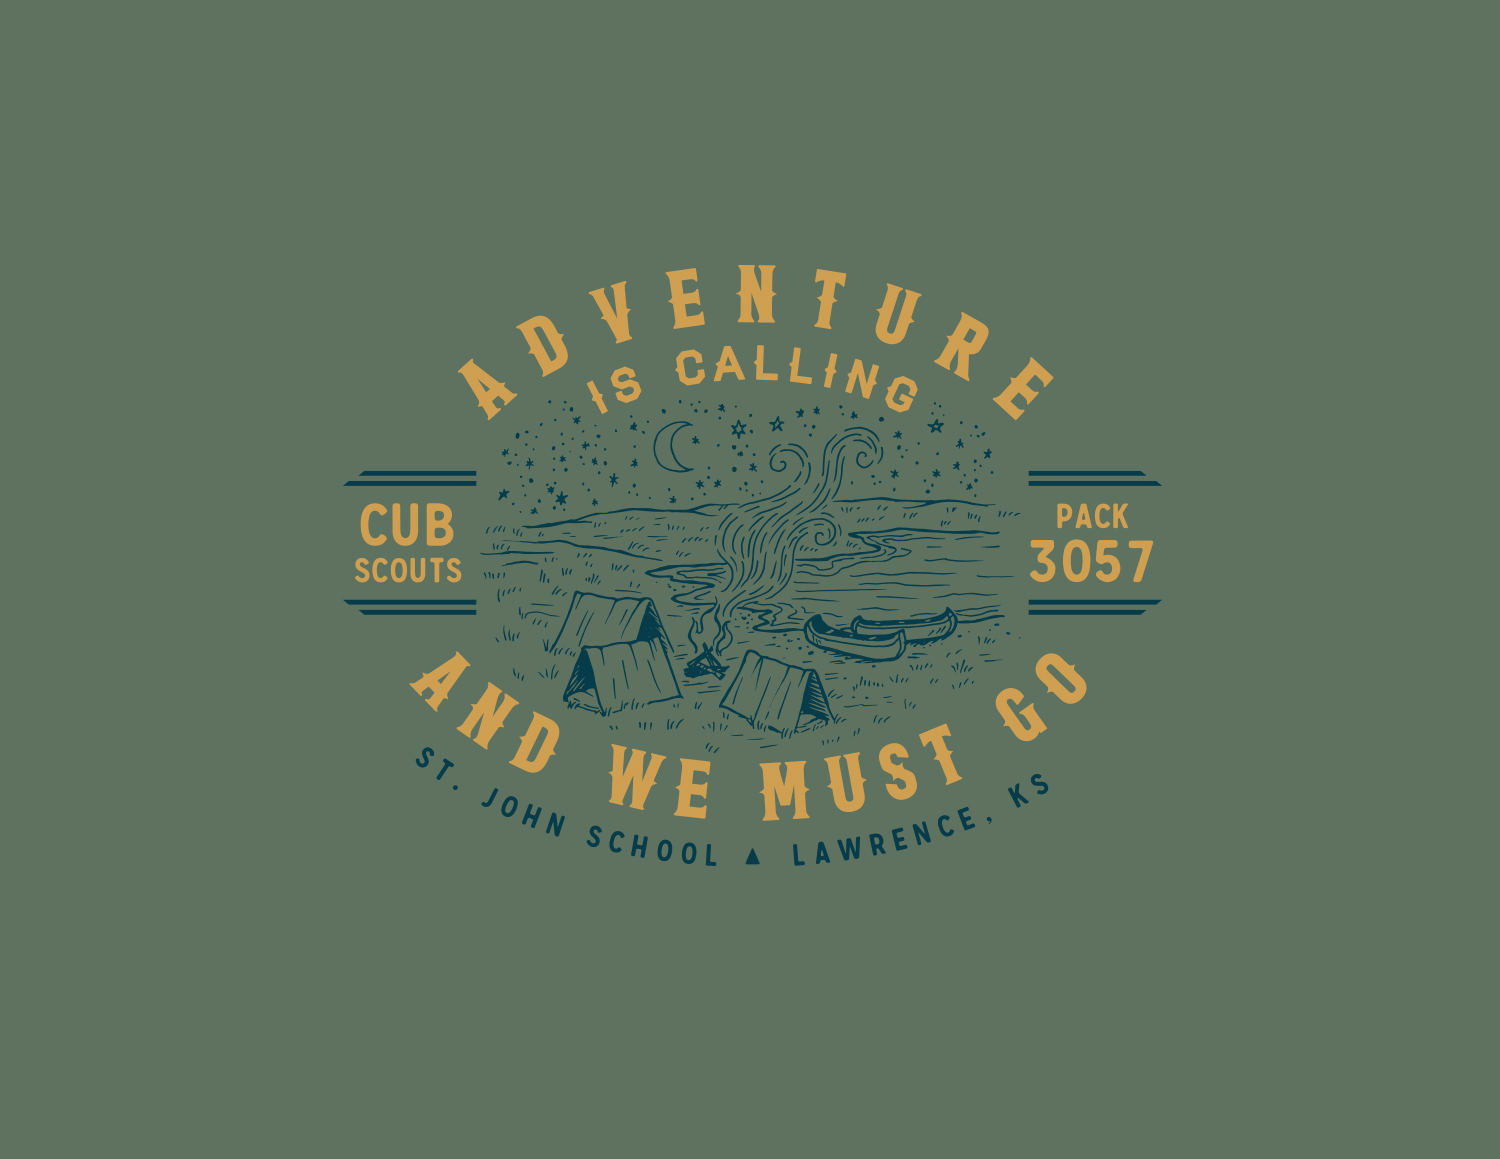 CubScouts3057_Print2.jpg